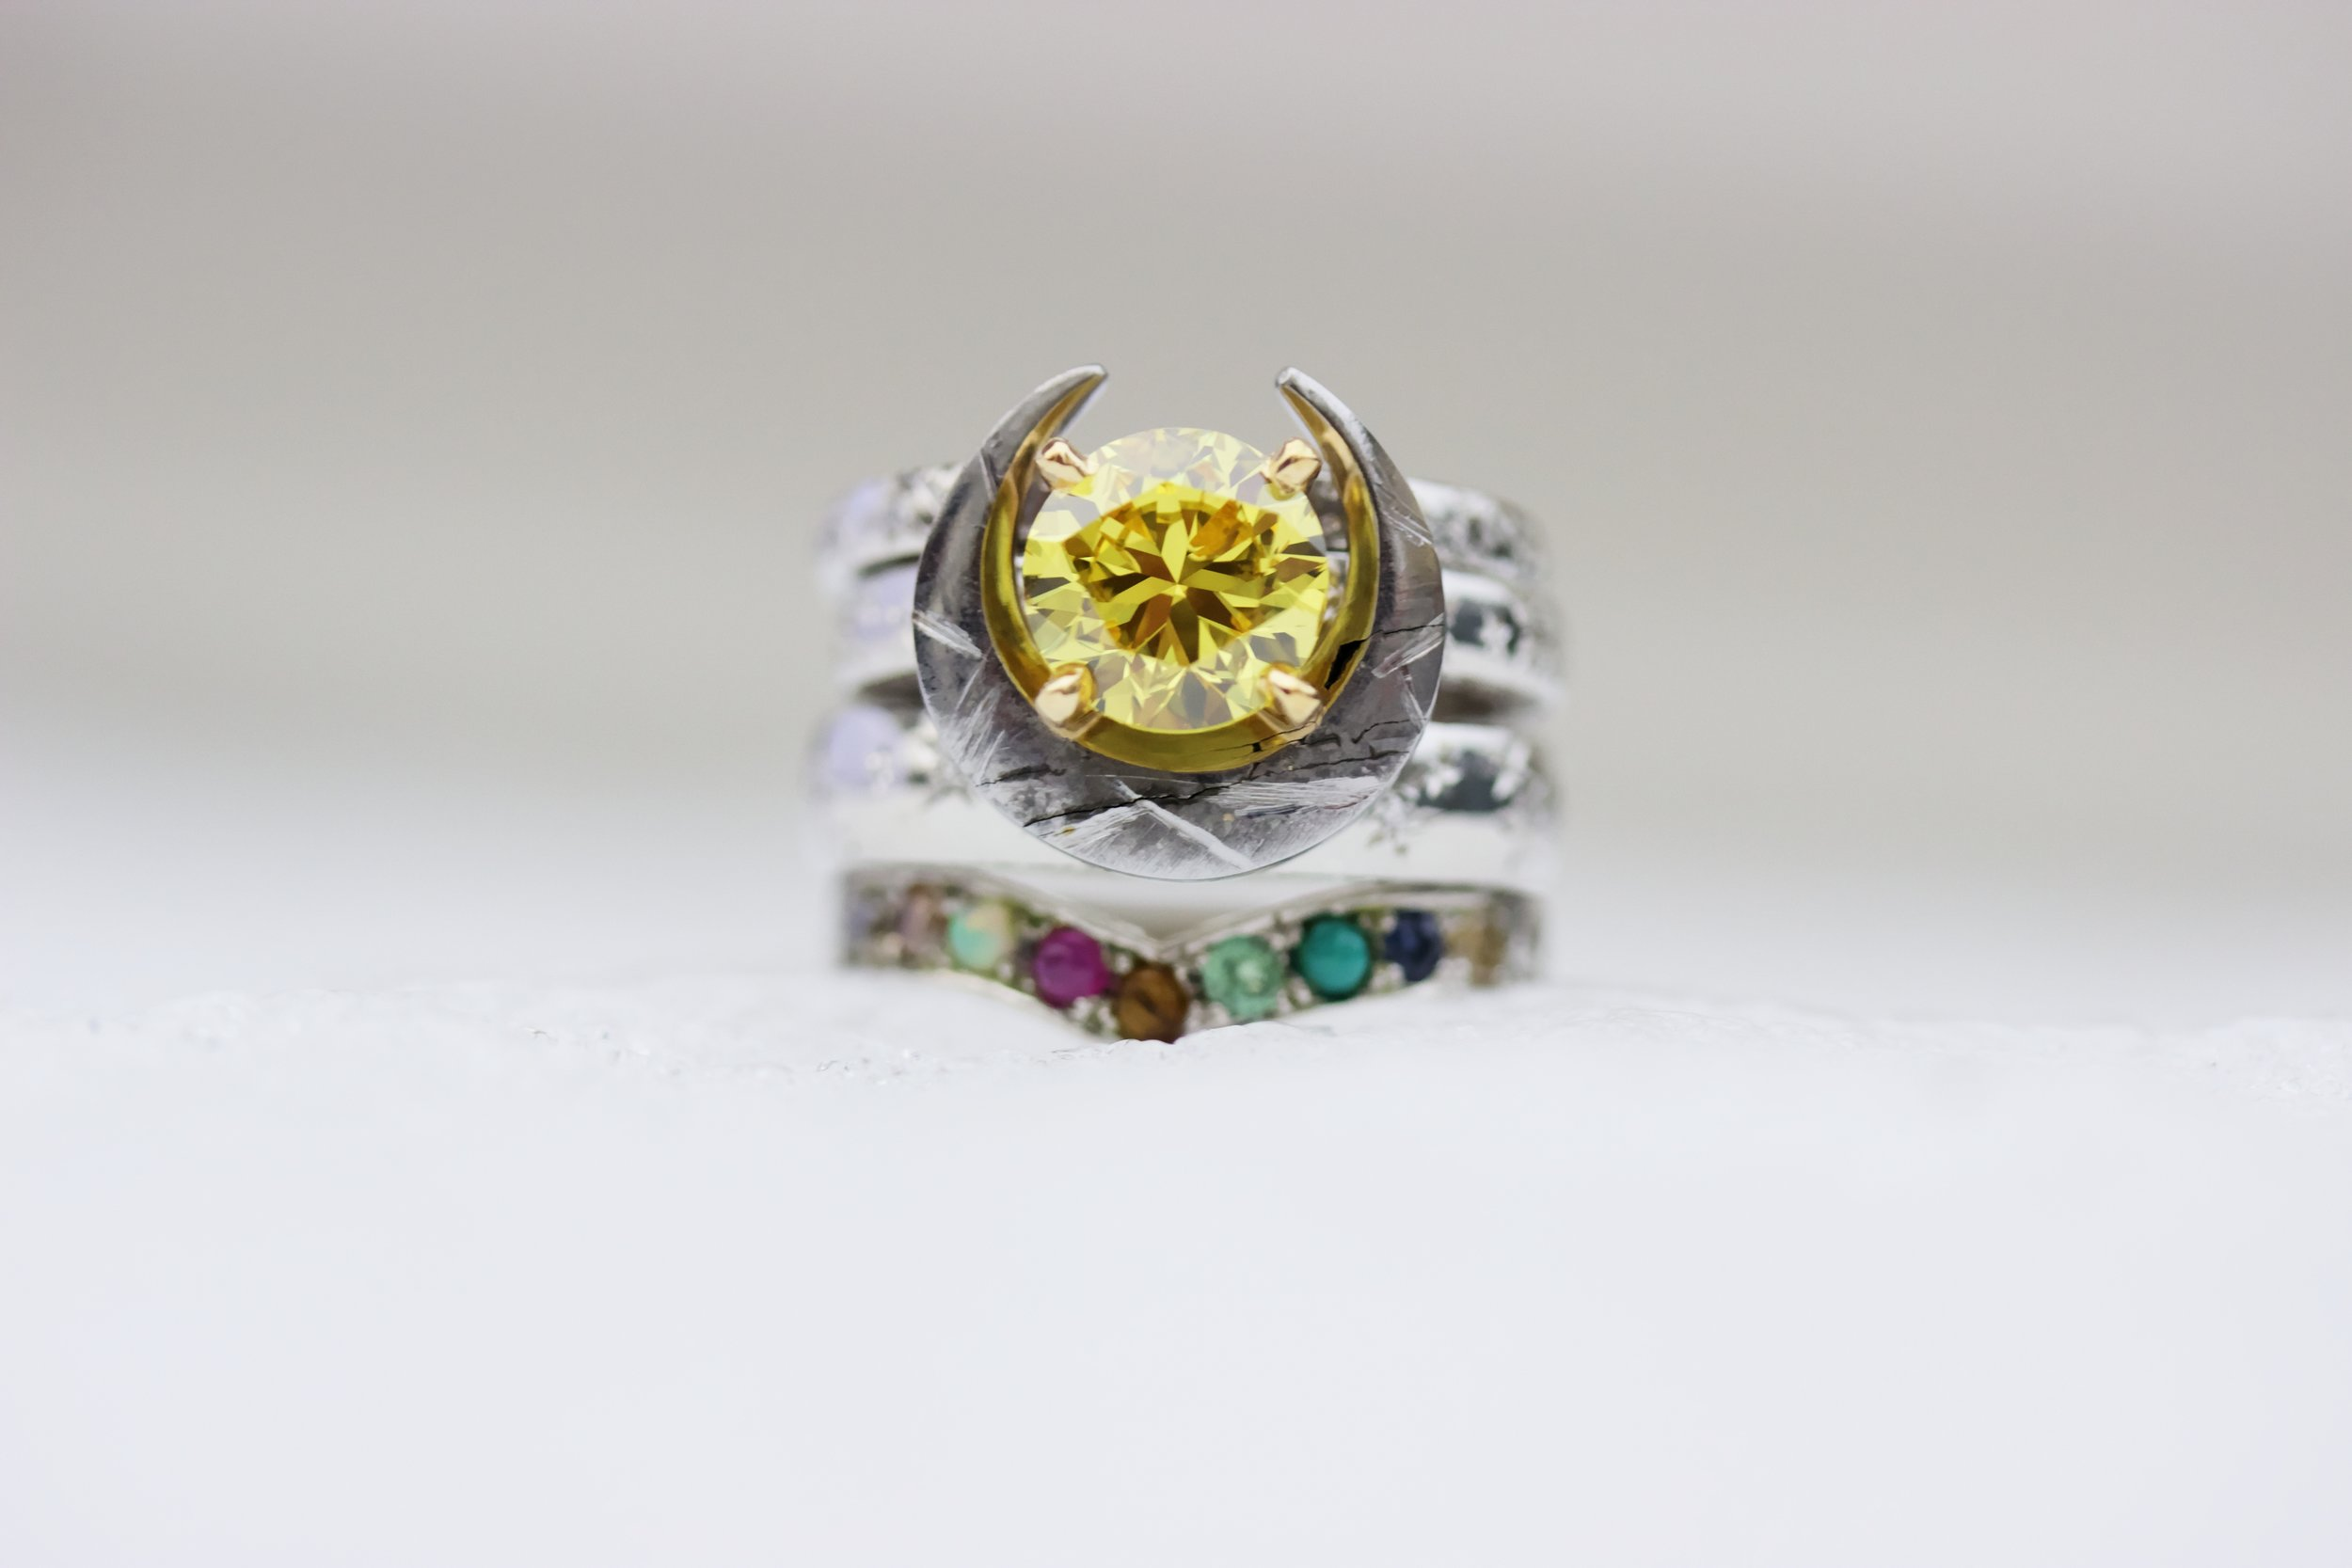 A fiery yellow diamond to represent the Sun, a hand carved Gibeon meteorite brings an element of outer space, and the Pleiades Ring features the 9 planets (including Pluto, thank you very much!)